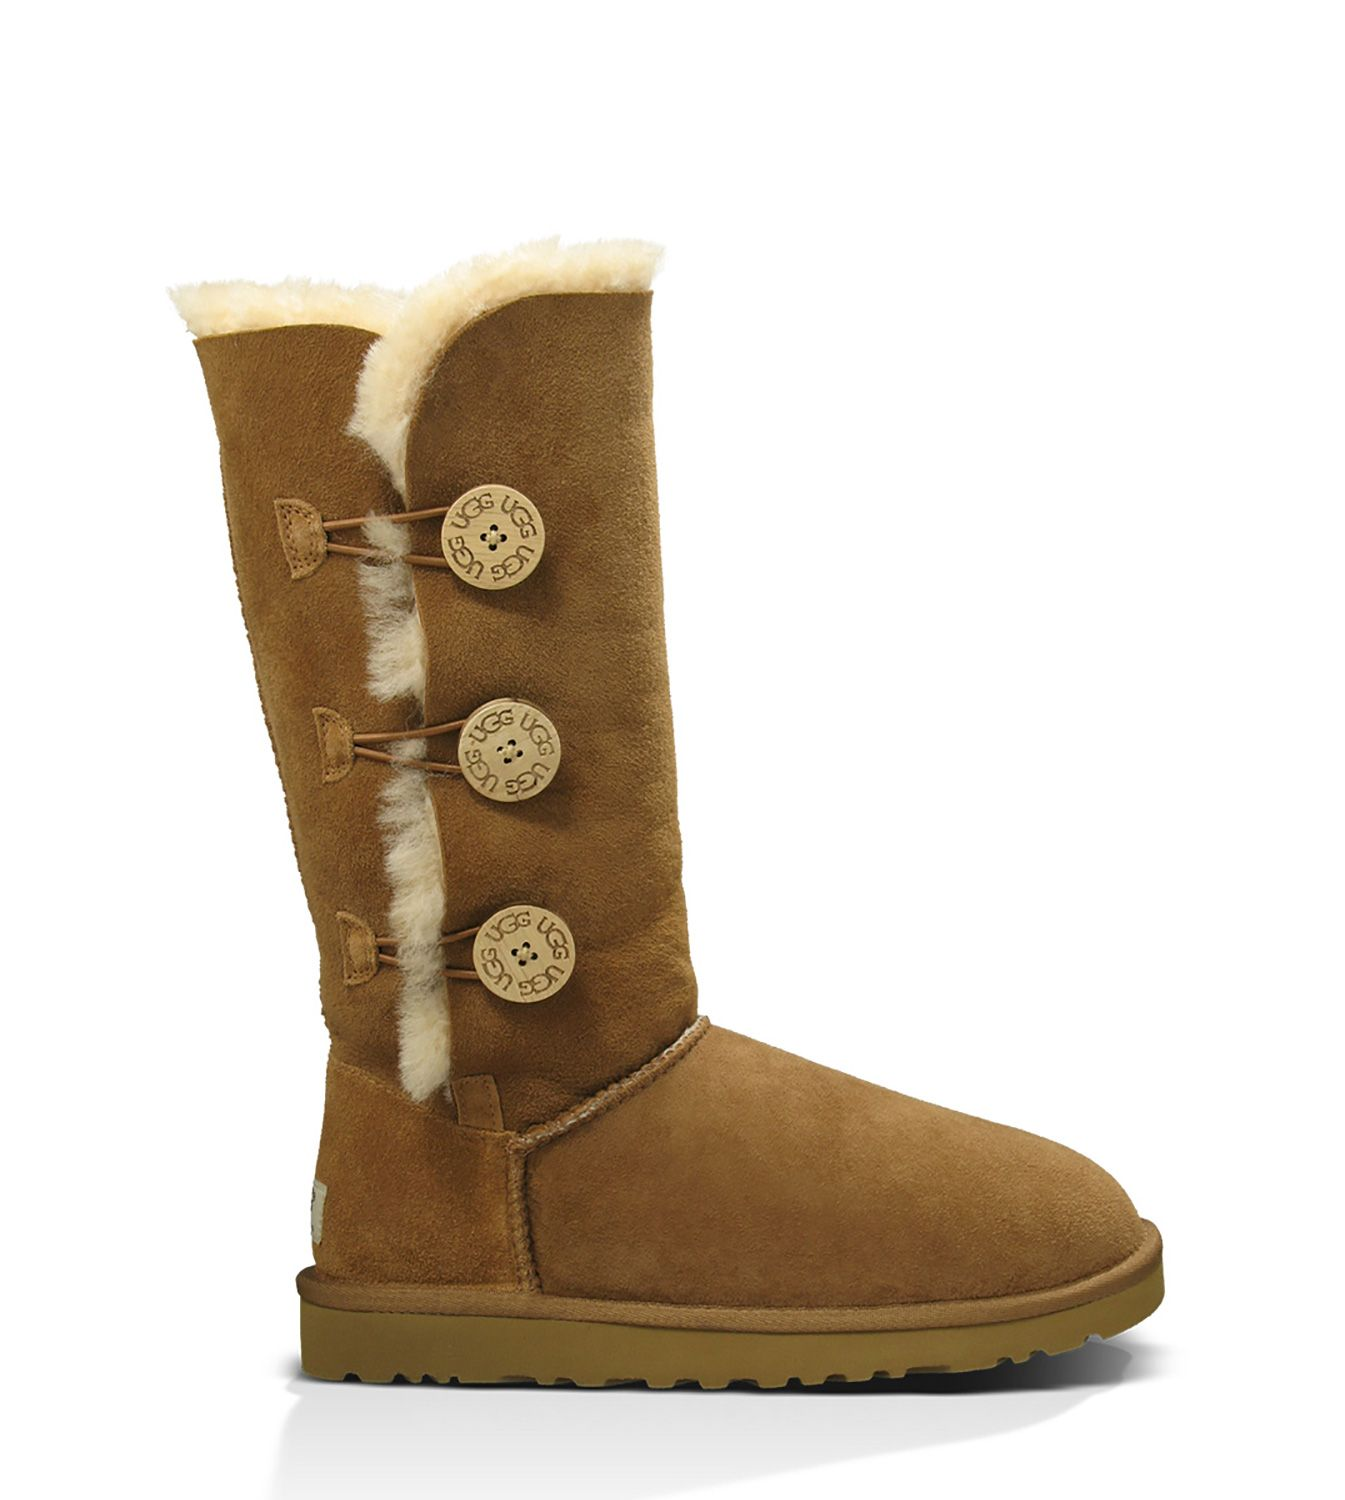 55df5430018 UGG® Bailey Button Triplet Boots for Women. Find this Pin ...